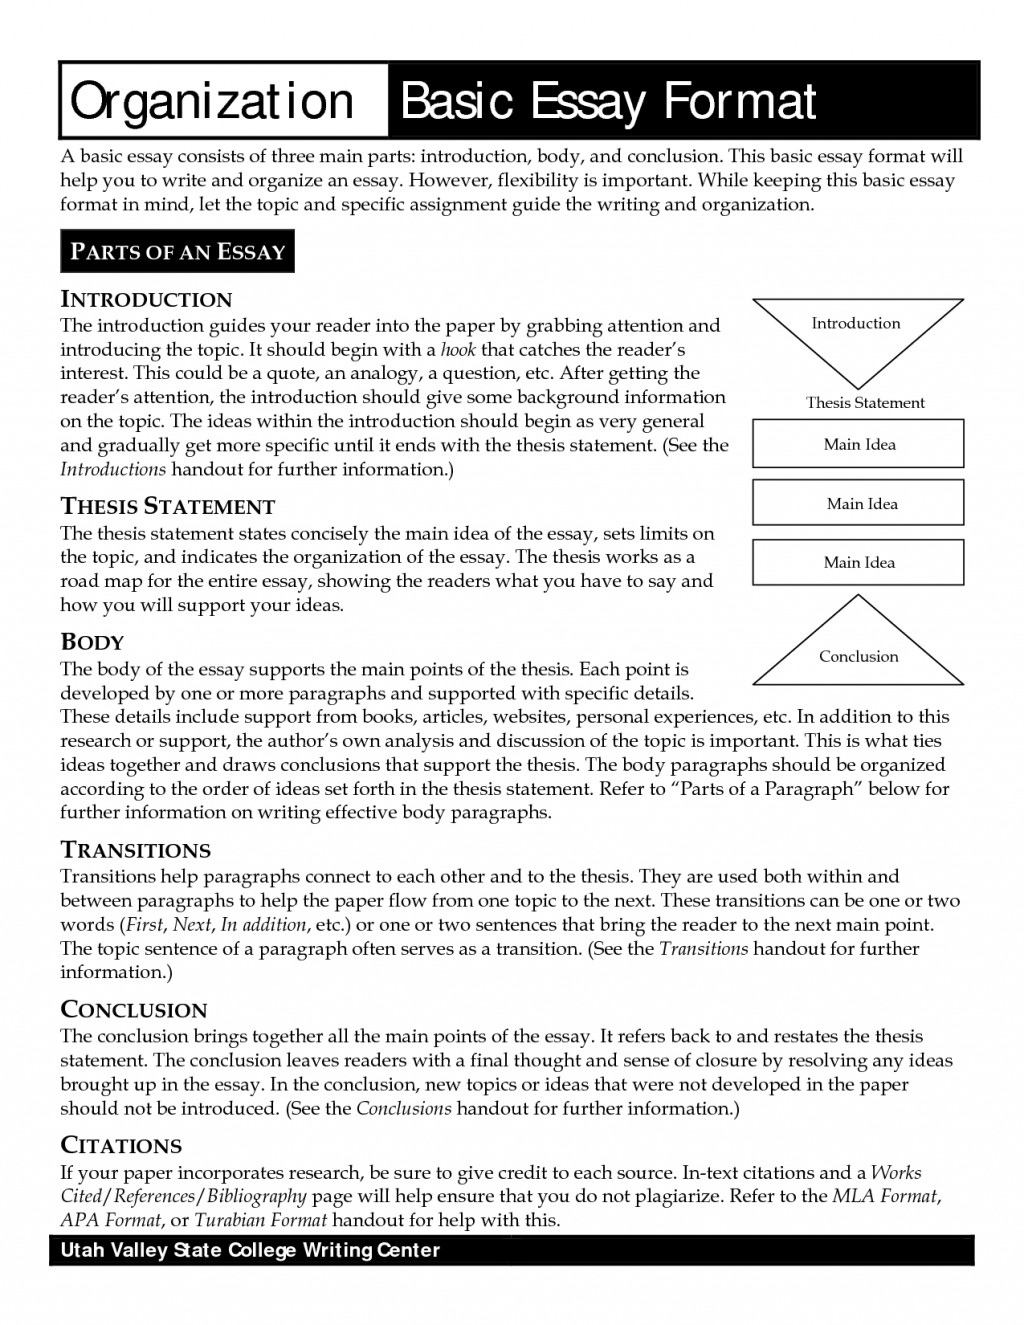 014 Standard Essay Format Get Online Research Paper Example Of Conclusion In About Unforgettable Bullying Large